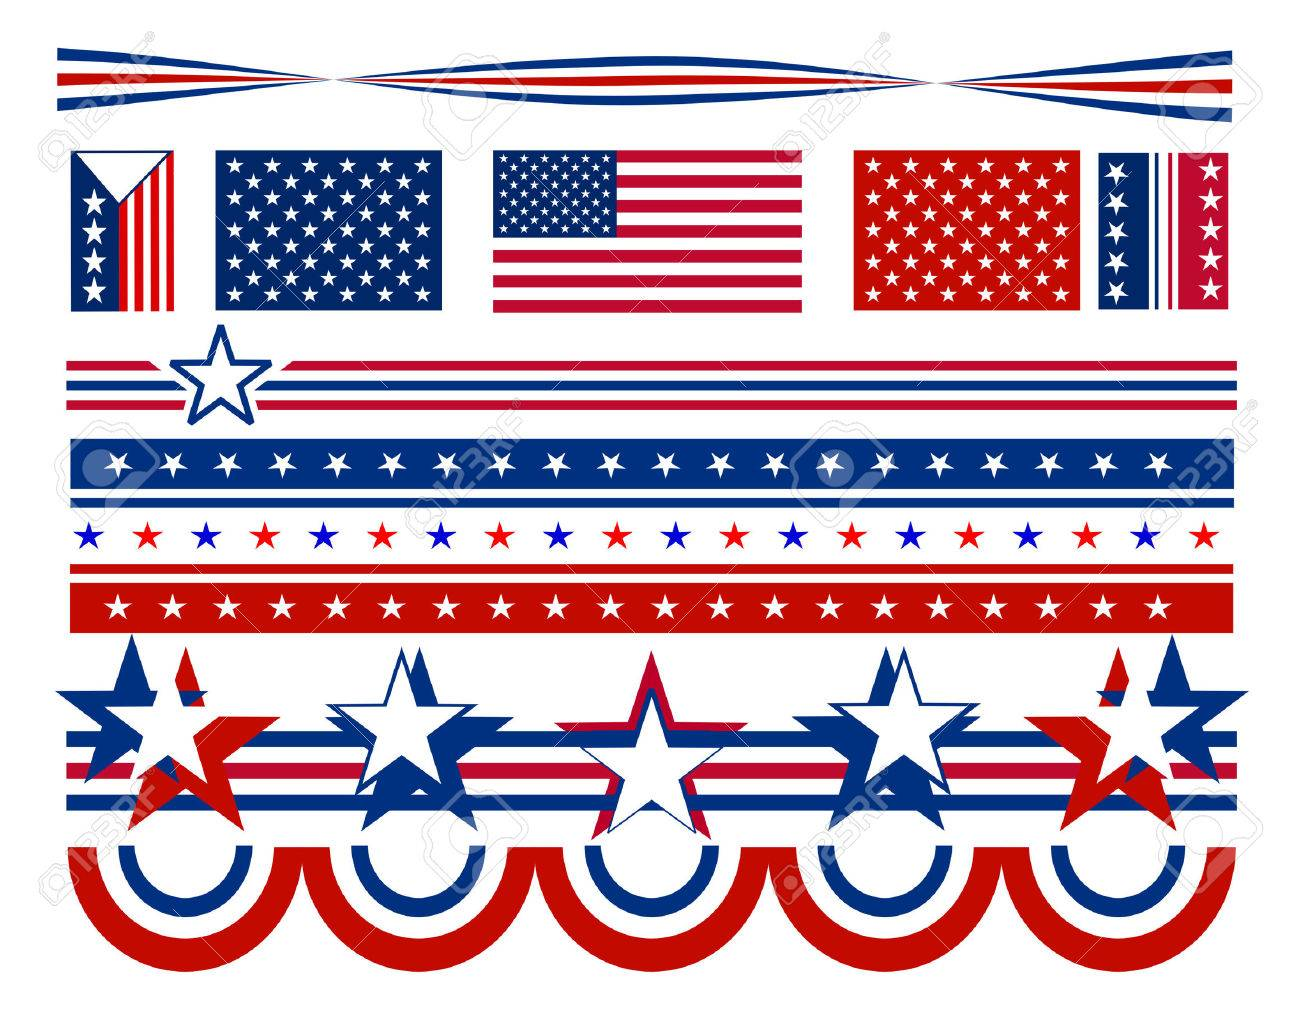 Patriotic Campaign Symbols And Decorations With Red White And Blue Stars  And Stripes. All Elements